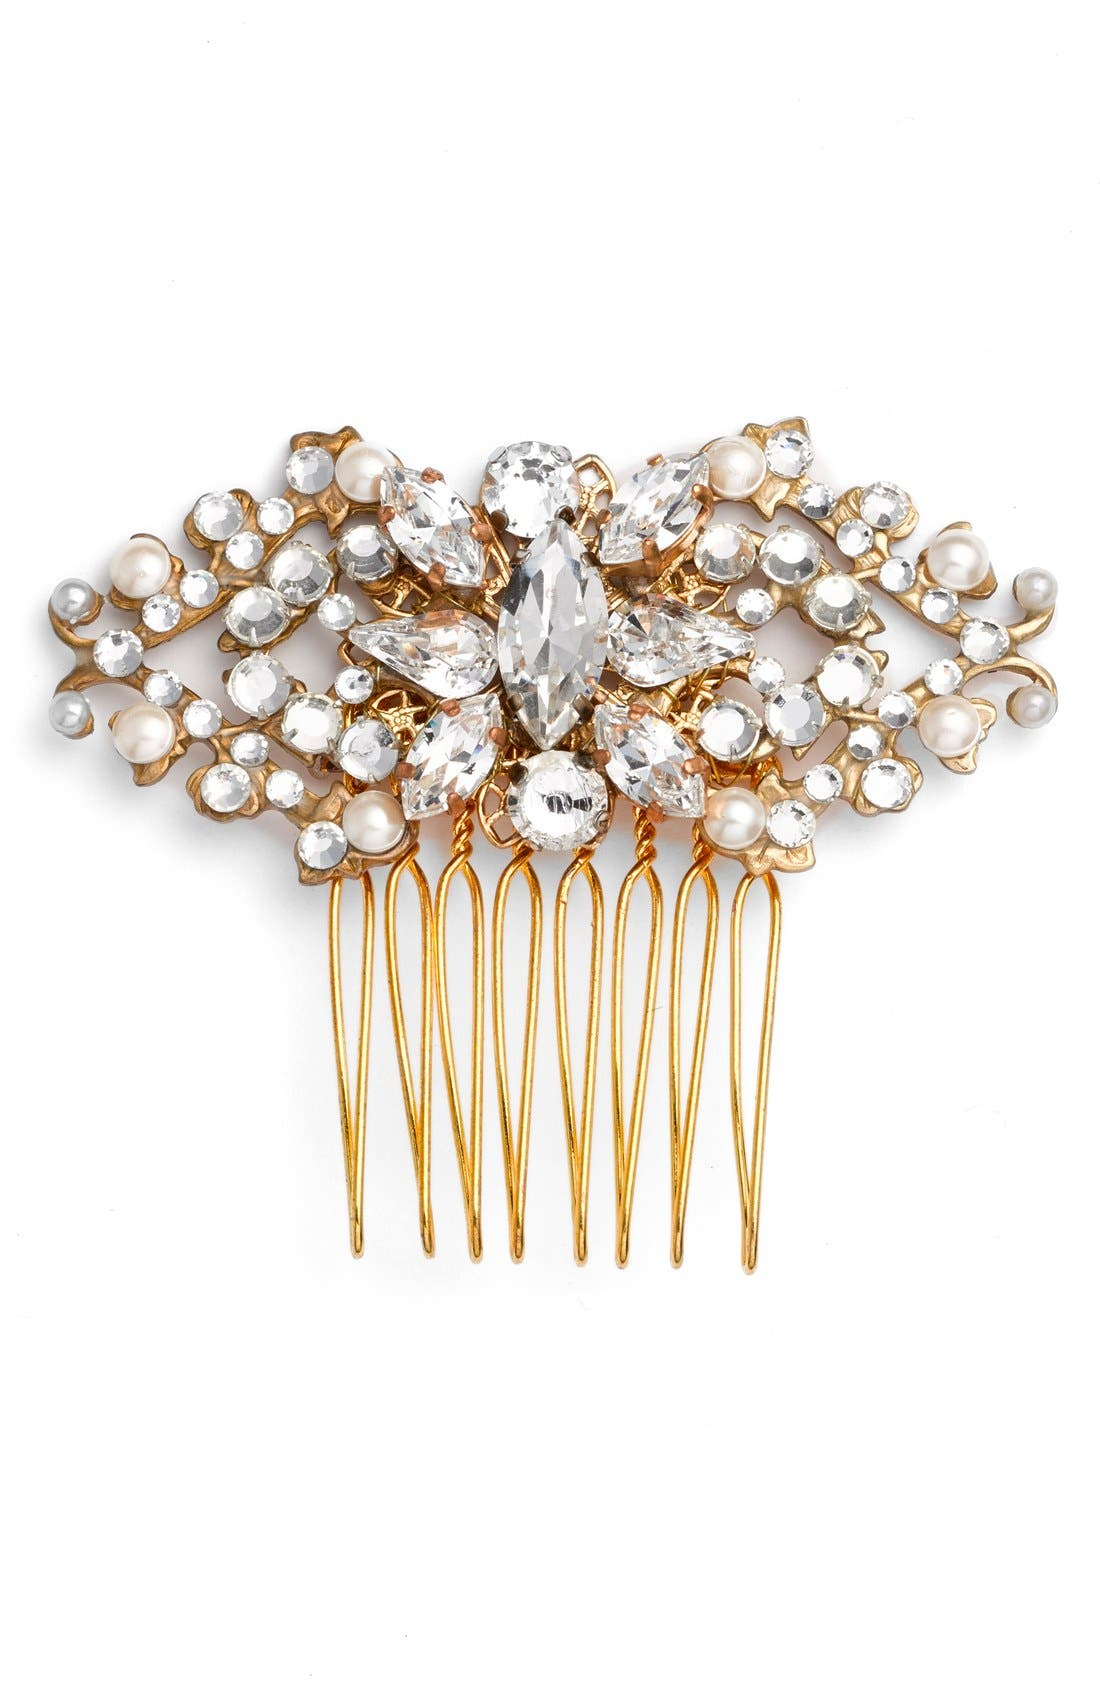 Main Image - Halo & Co 'Edith' Crystal Hair Comb